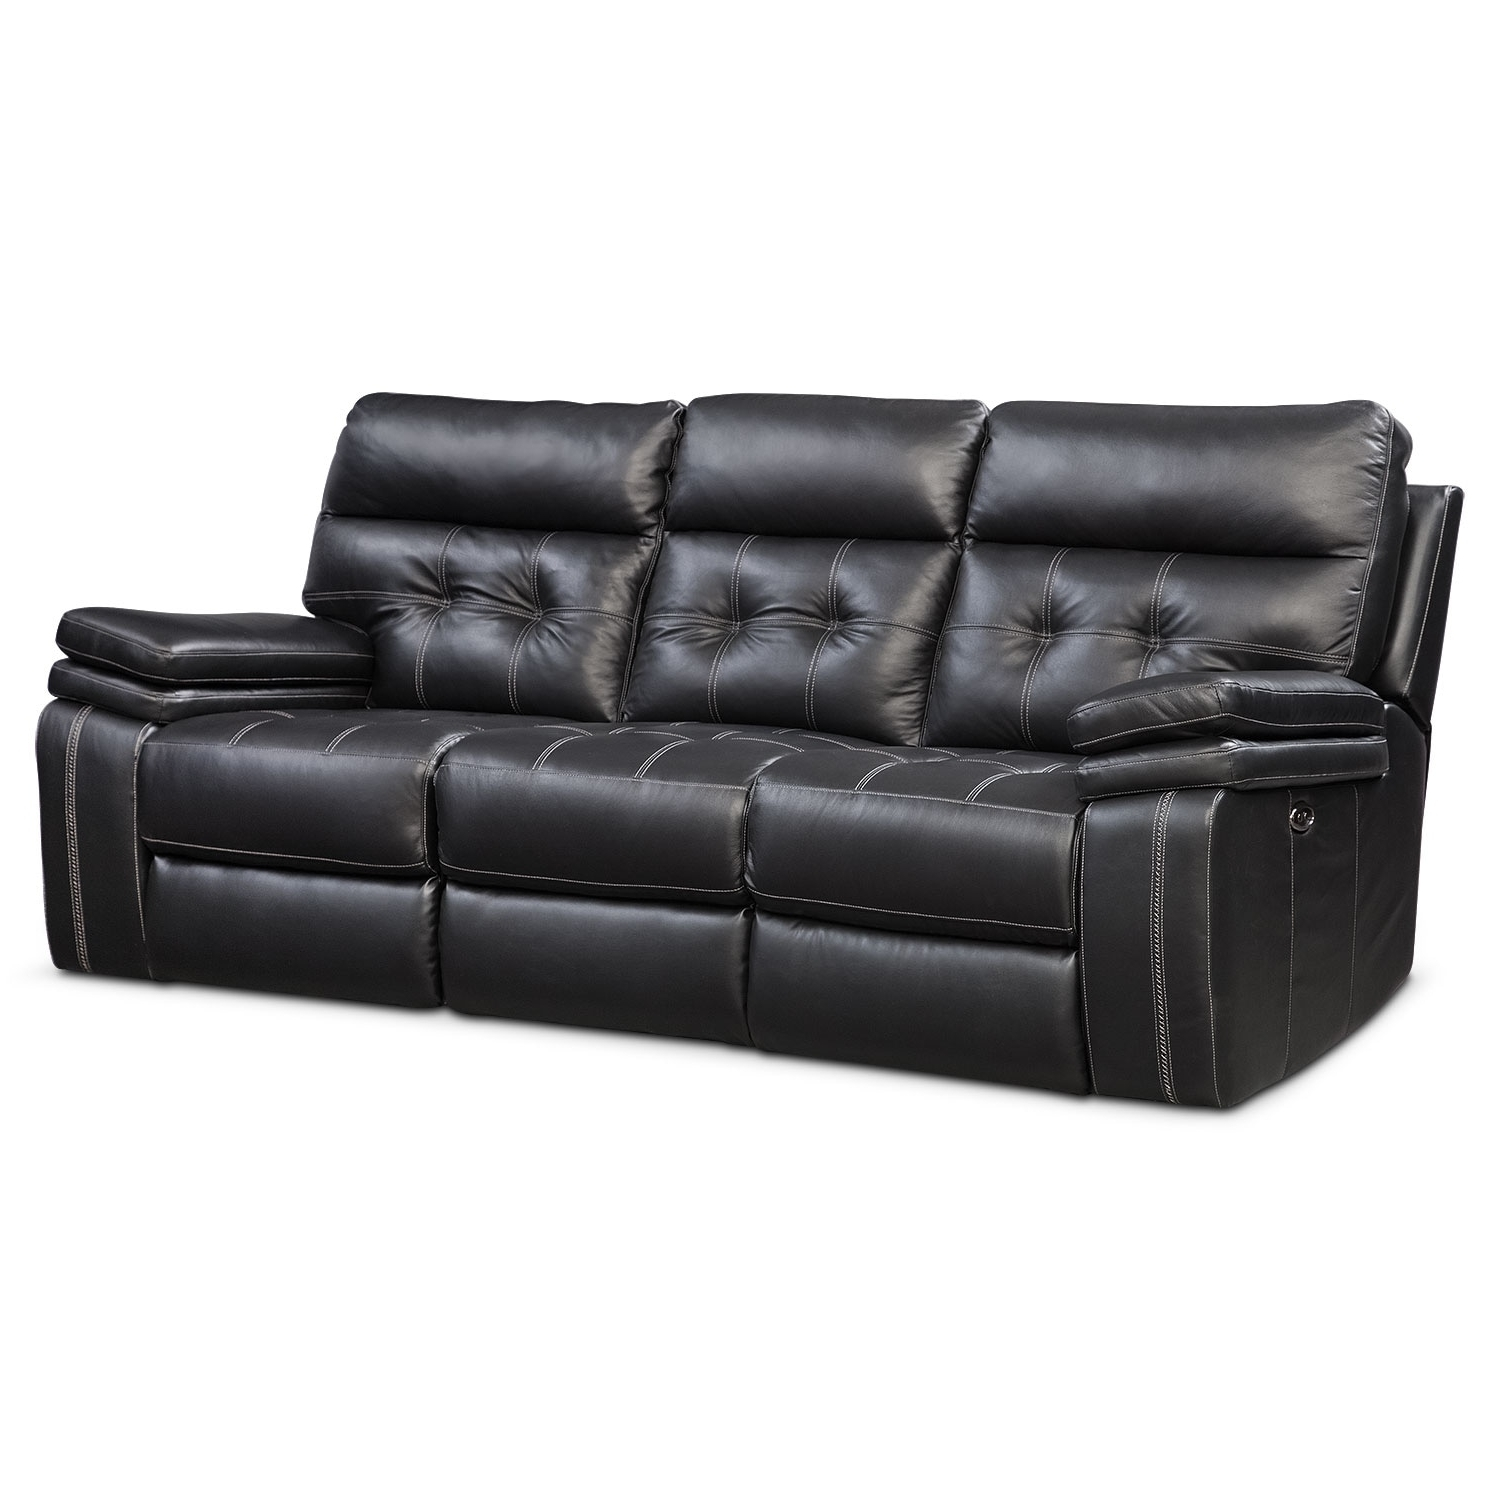 Fashionable Value City Sofas For Sofas & Couches (View 16 of 20)